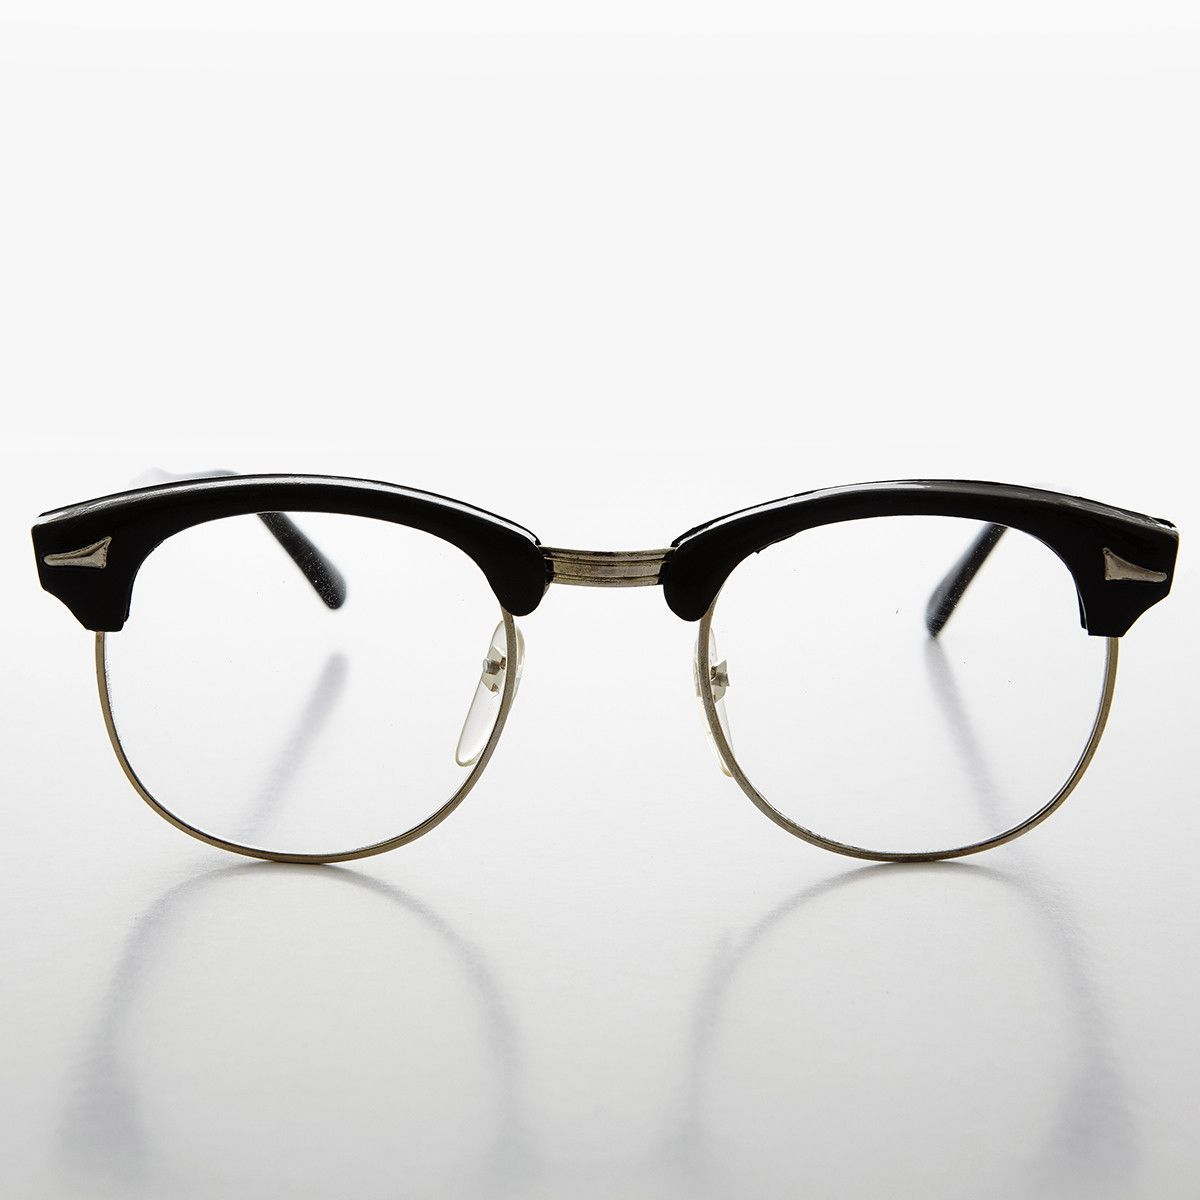 7a0795355ab A real American classic frame famously worn by Malcolm X. Horn rim glasses  continue to make a stylish fashion statement. New old stock 1980s. Never  worn.